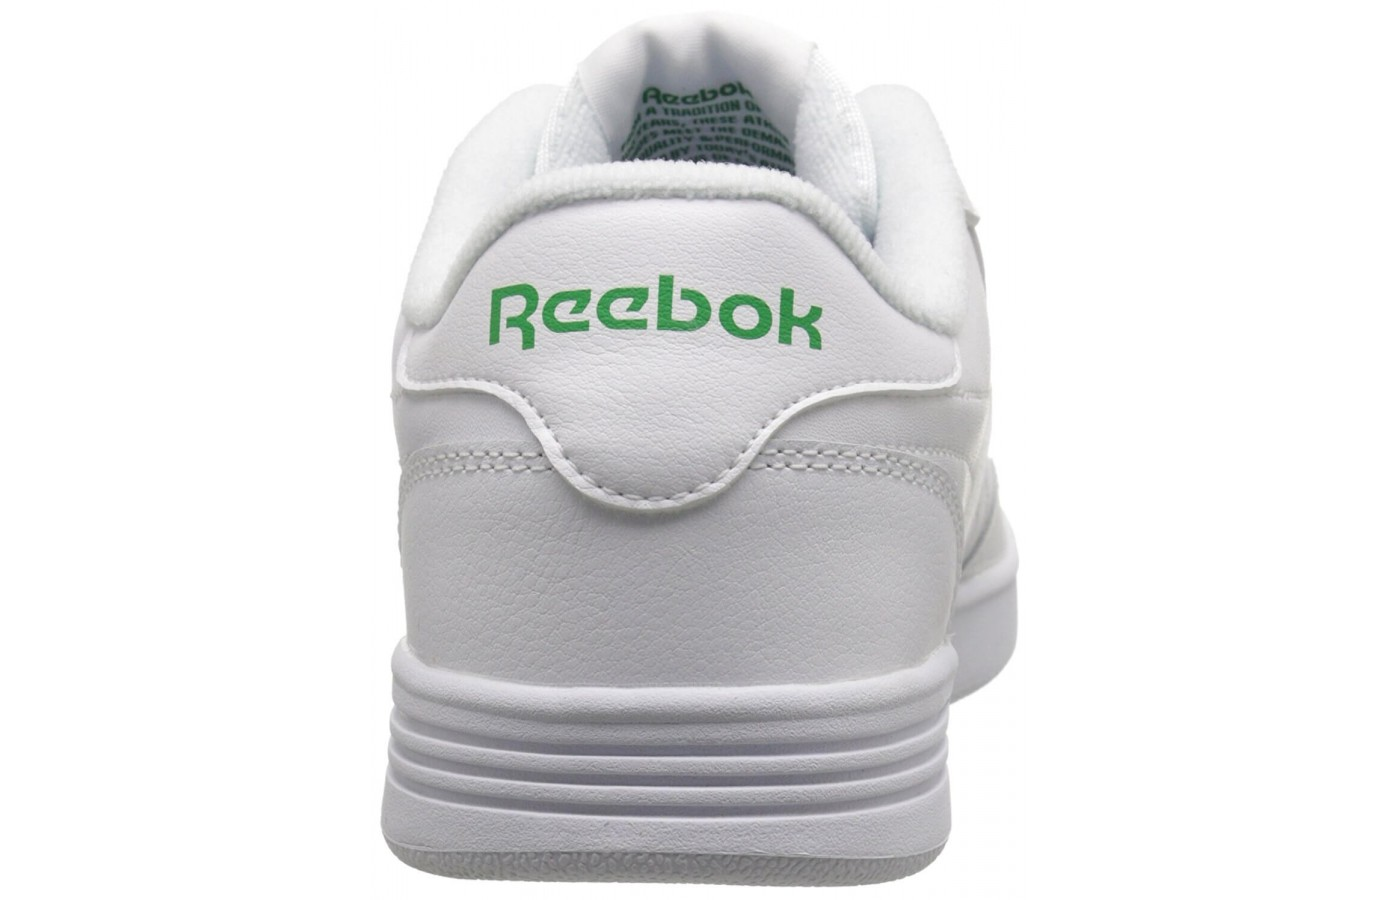 9599ac20b911 Reebok Club Memt Reviewed - To Buy or Not in Apr 2019